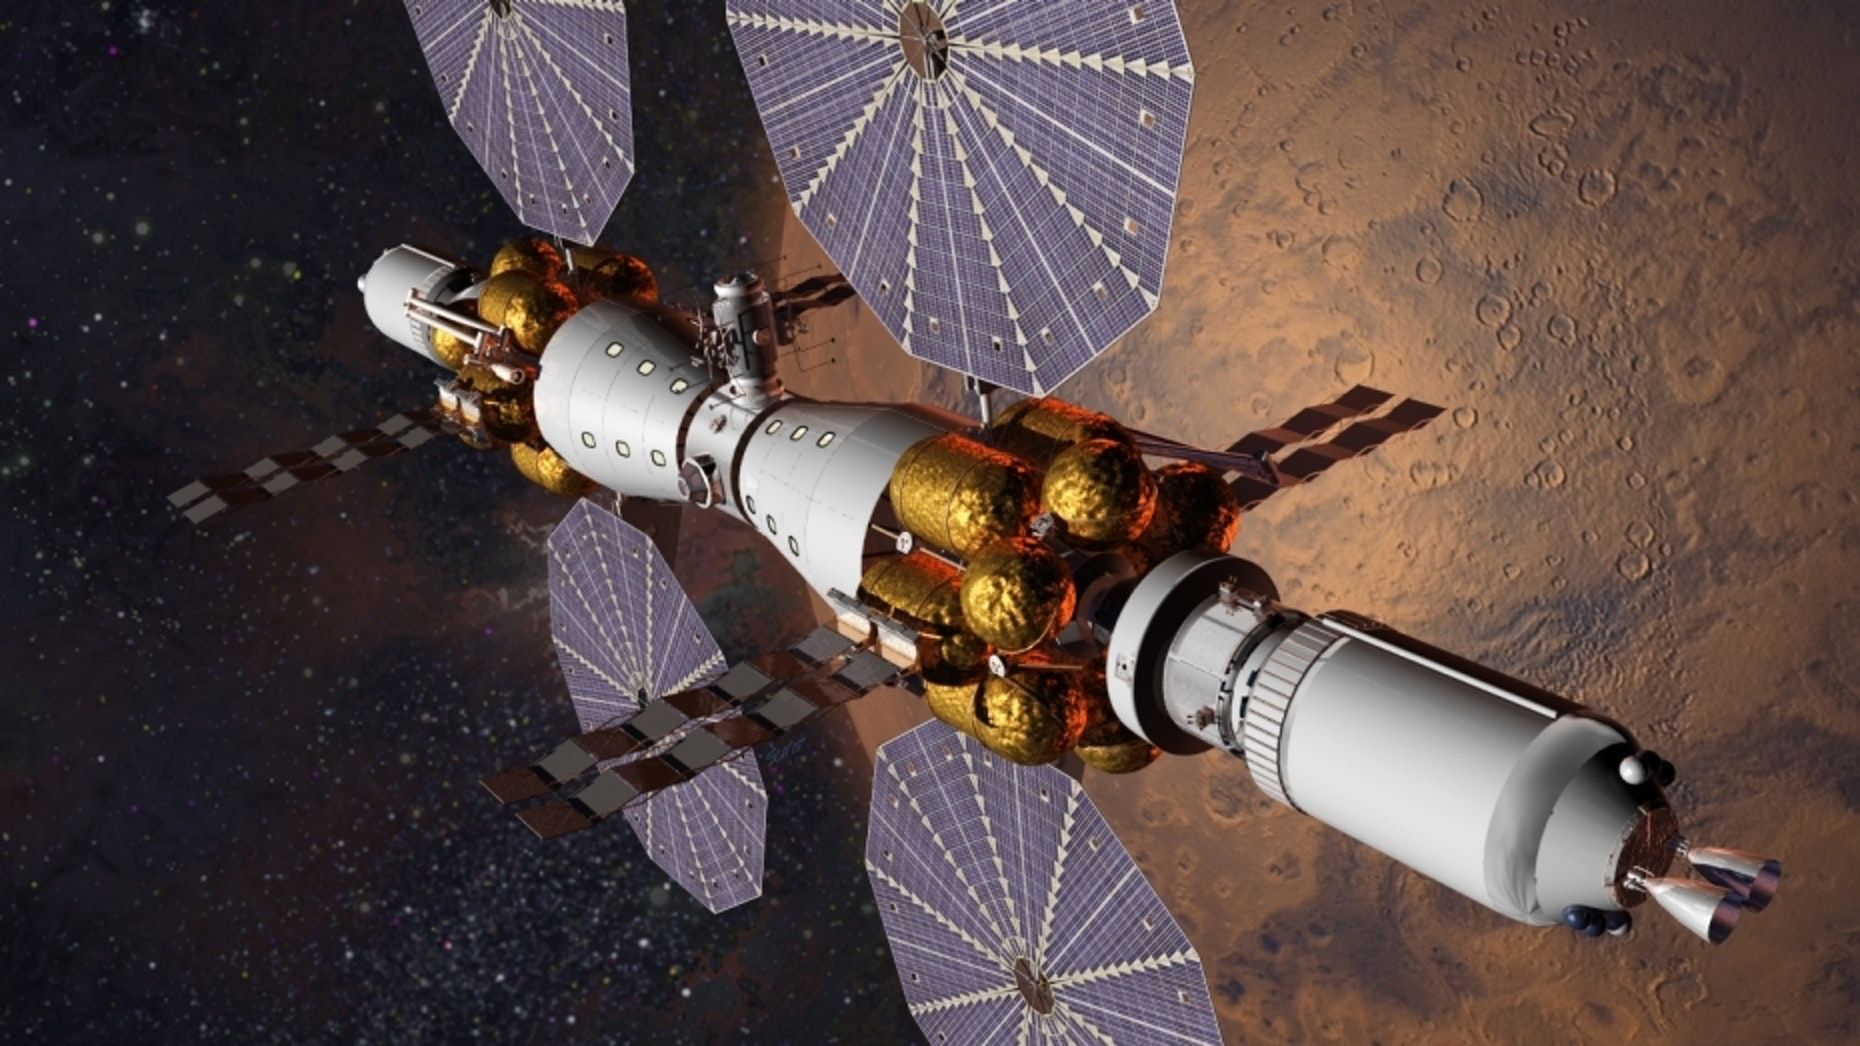 This is what Mars Base Camp will look like.